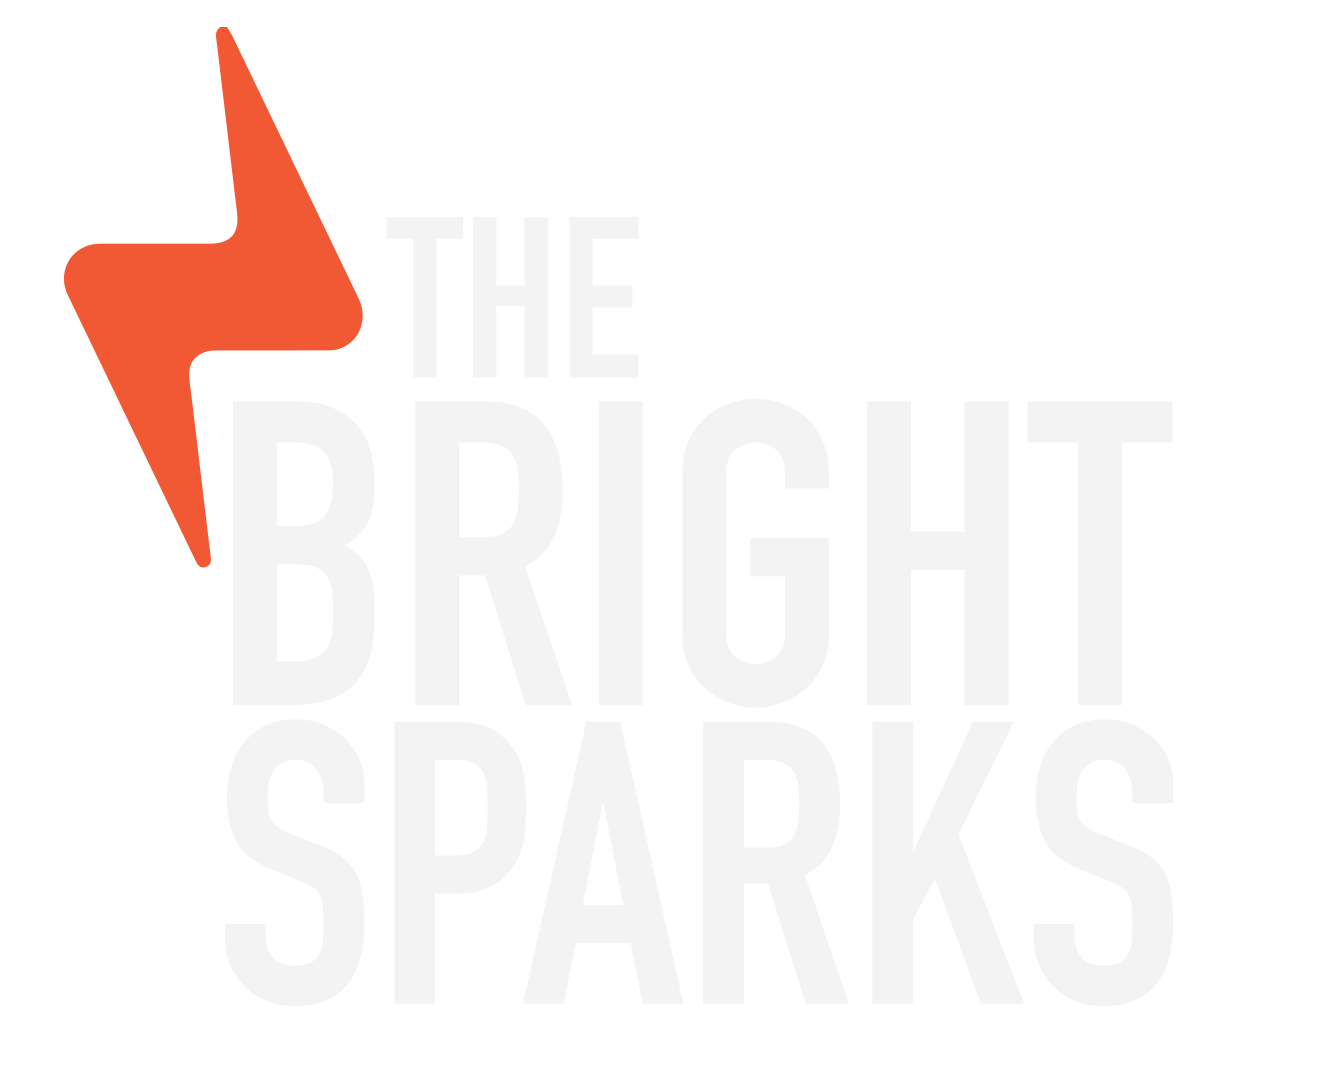 The Bright Sparks